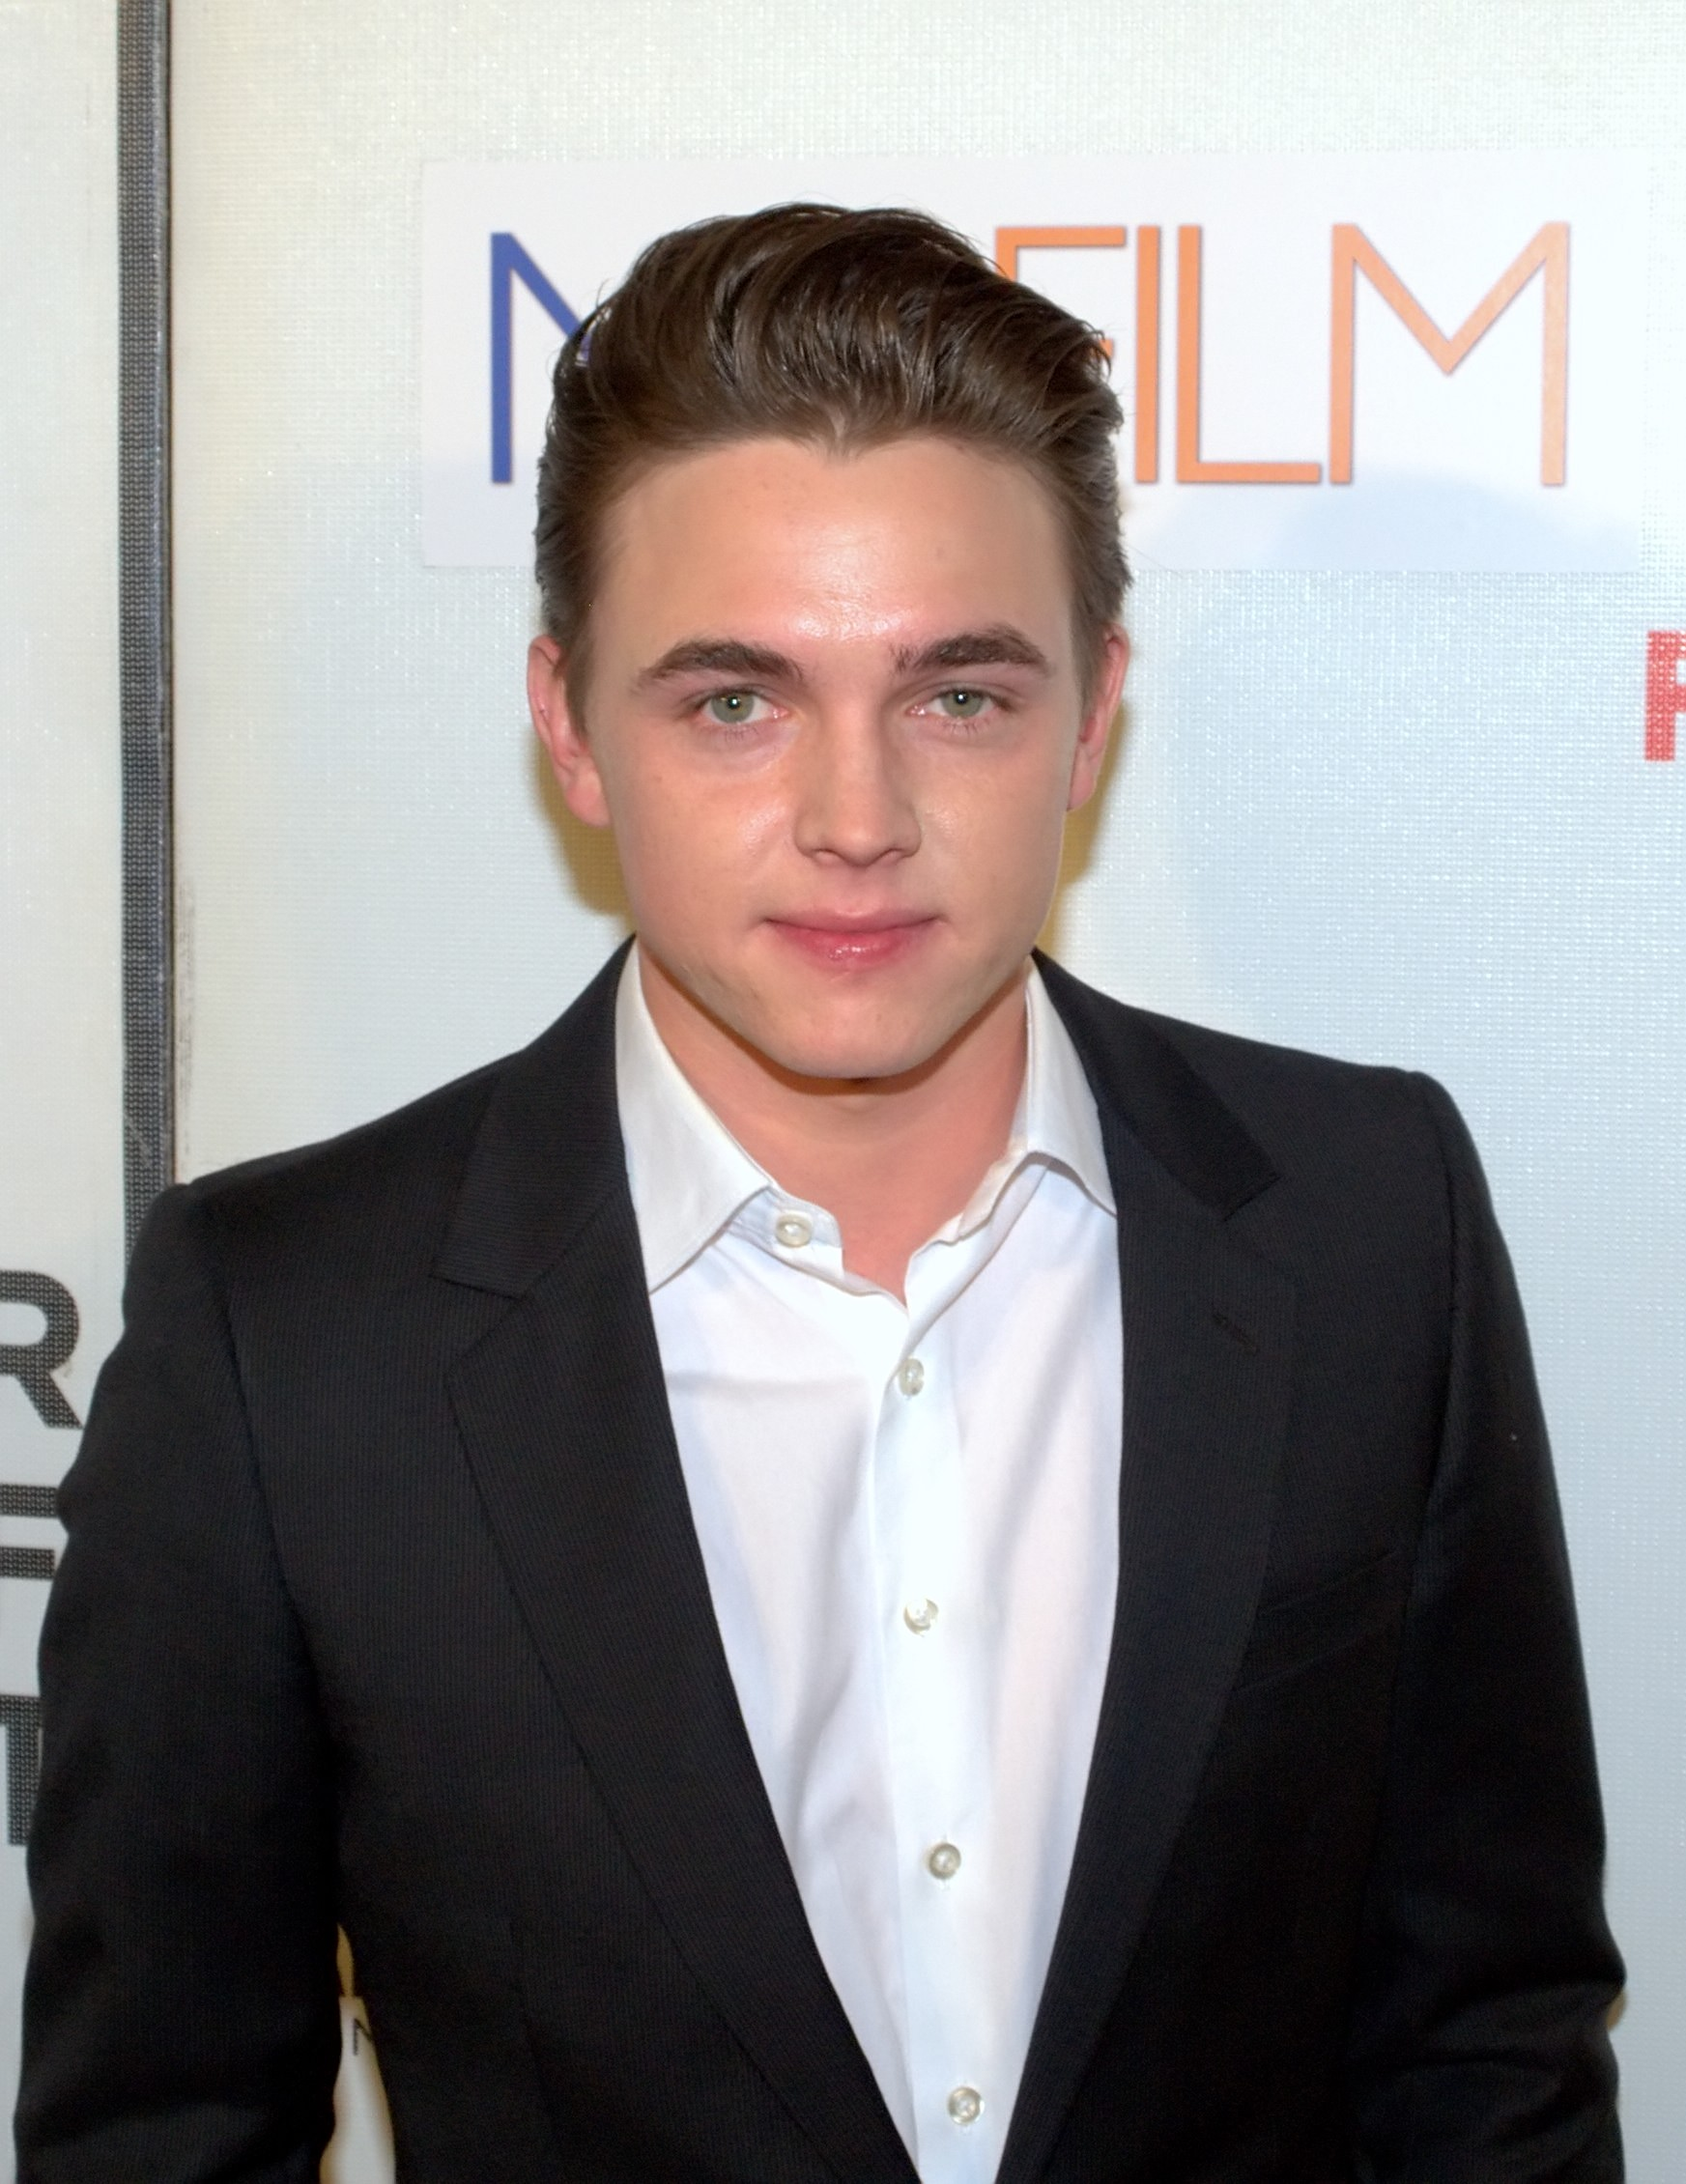 Actor, Singer, Songwriter, Musician Jesse McCartney - age: 34